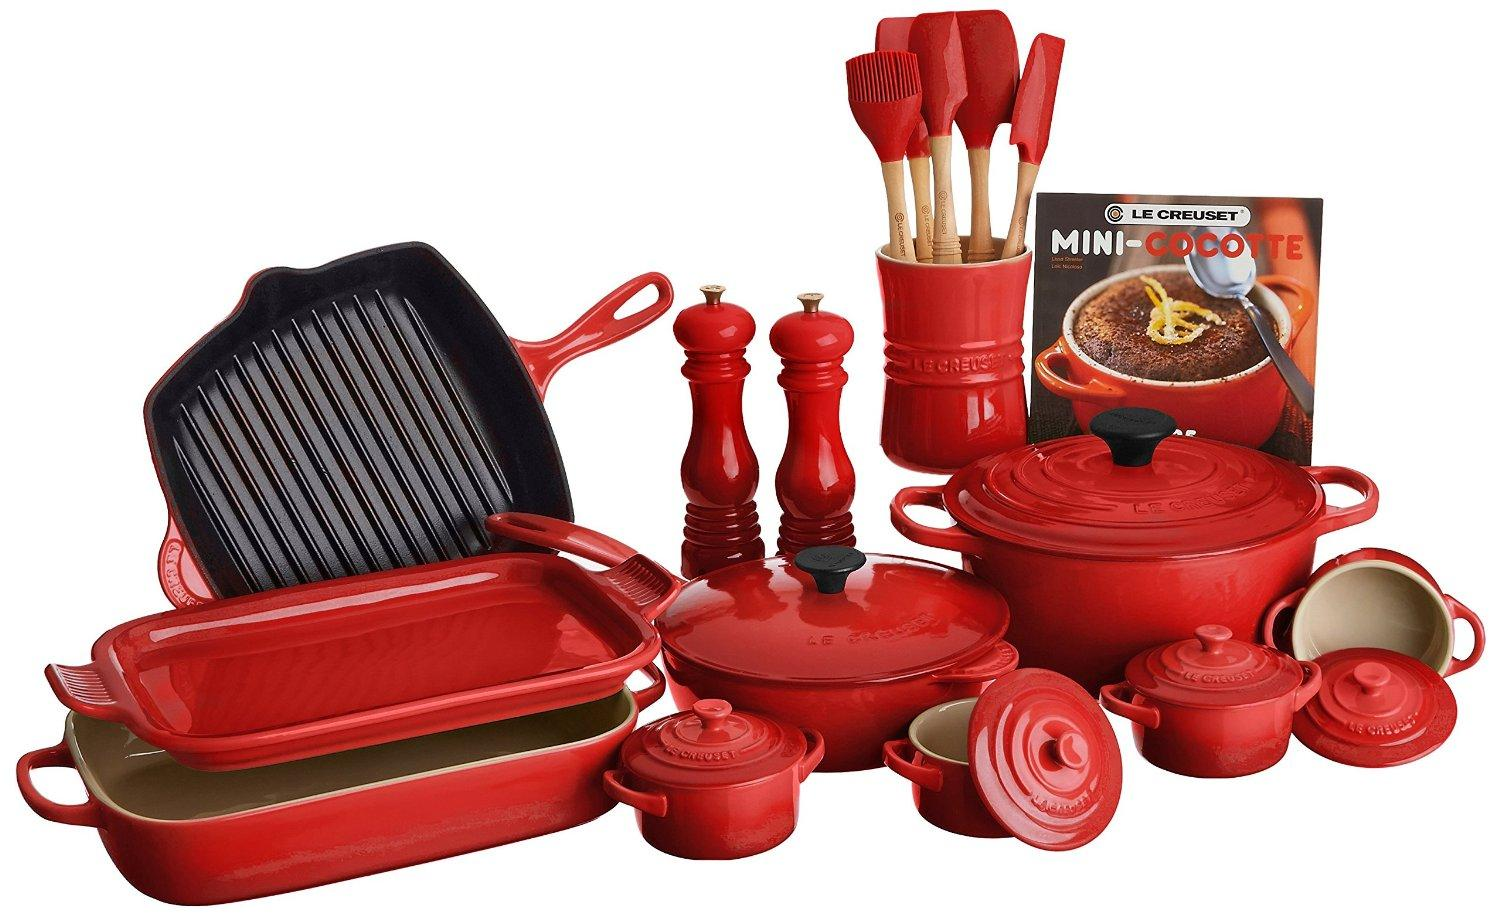 Le creuset of america 20 piece cookware set for Kitchen set olx